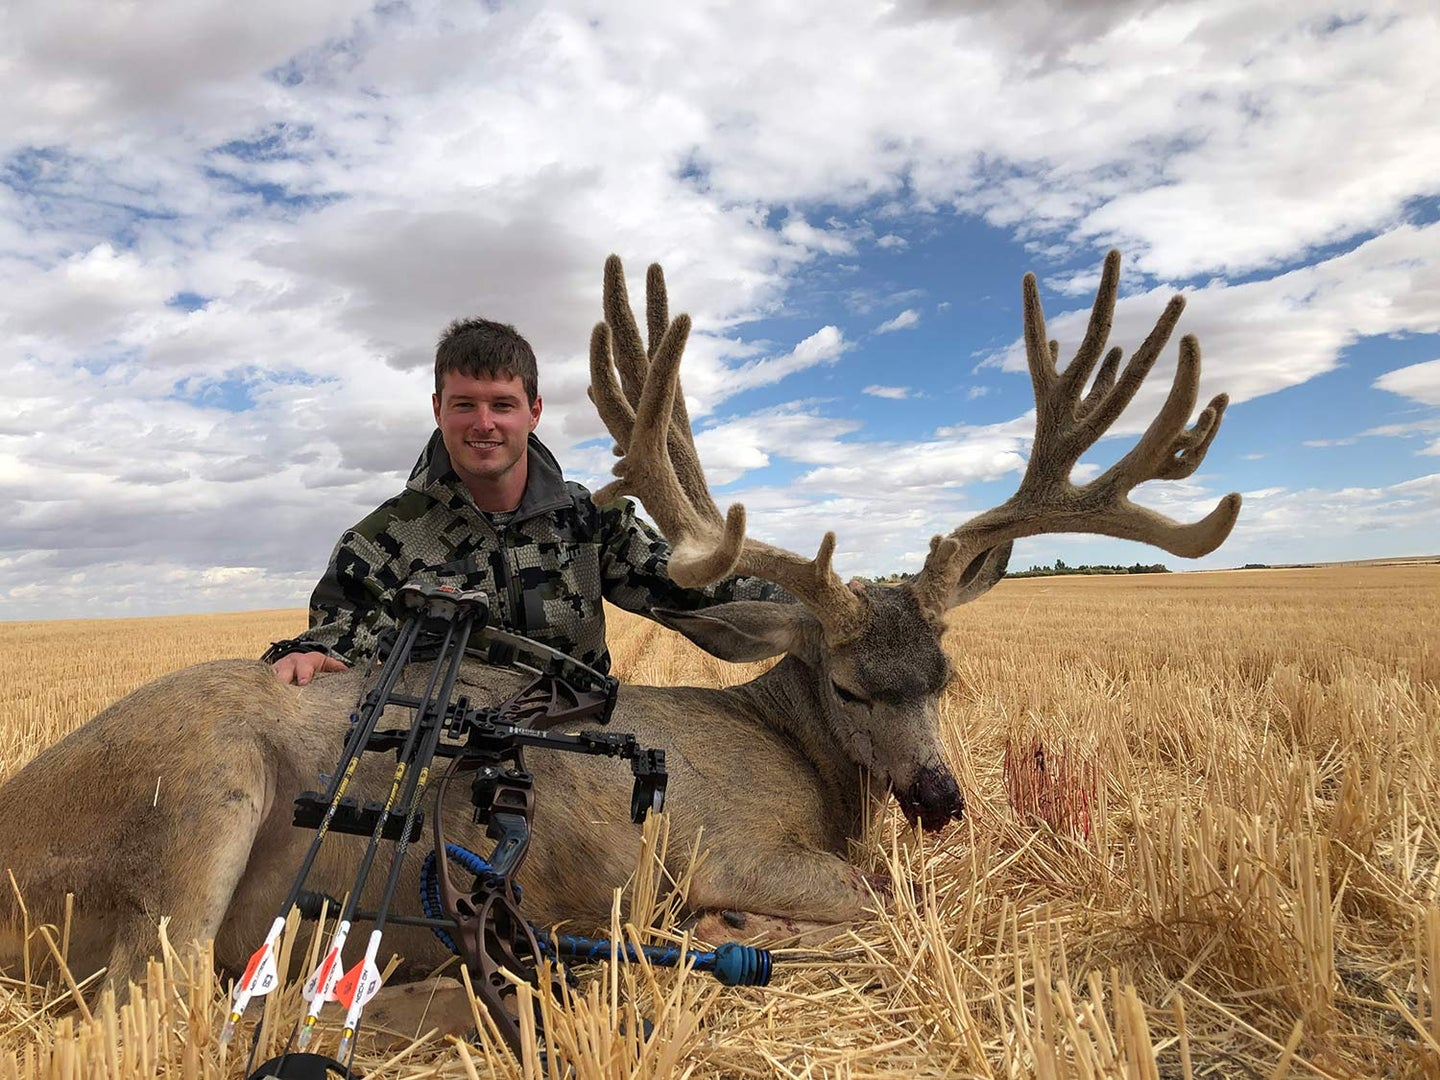 A hunter kneels behind a dead mule deer and holds up its head by the antlers.